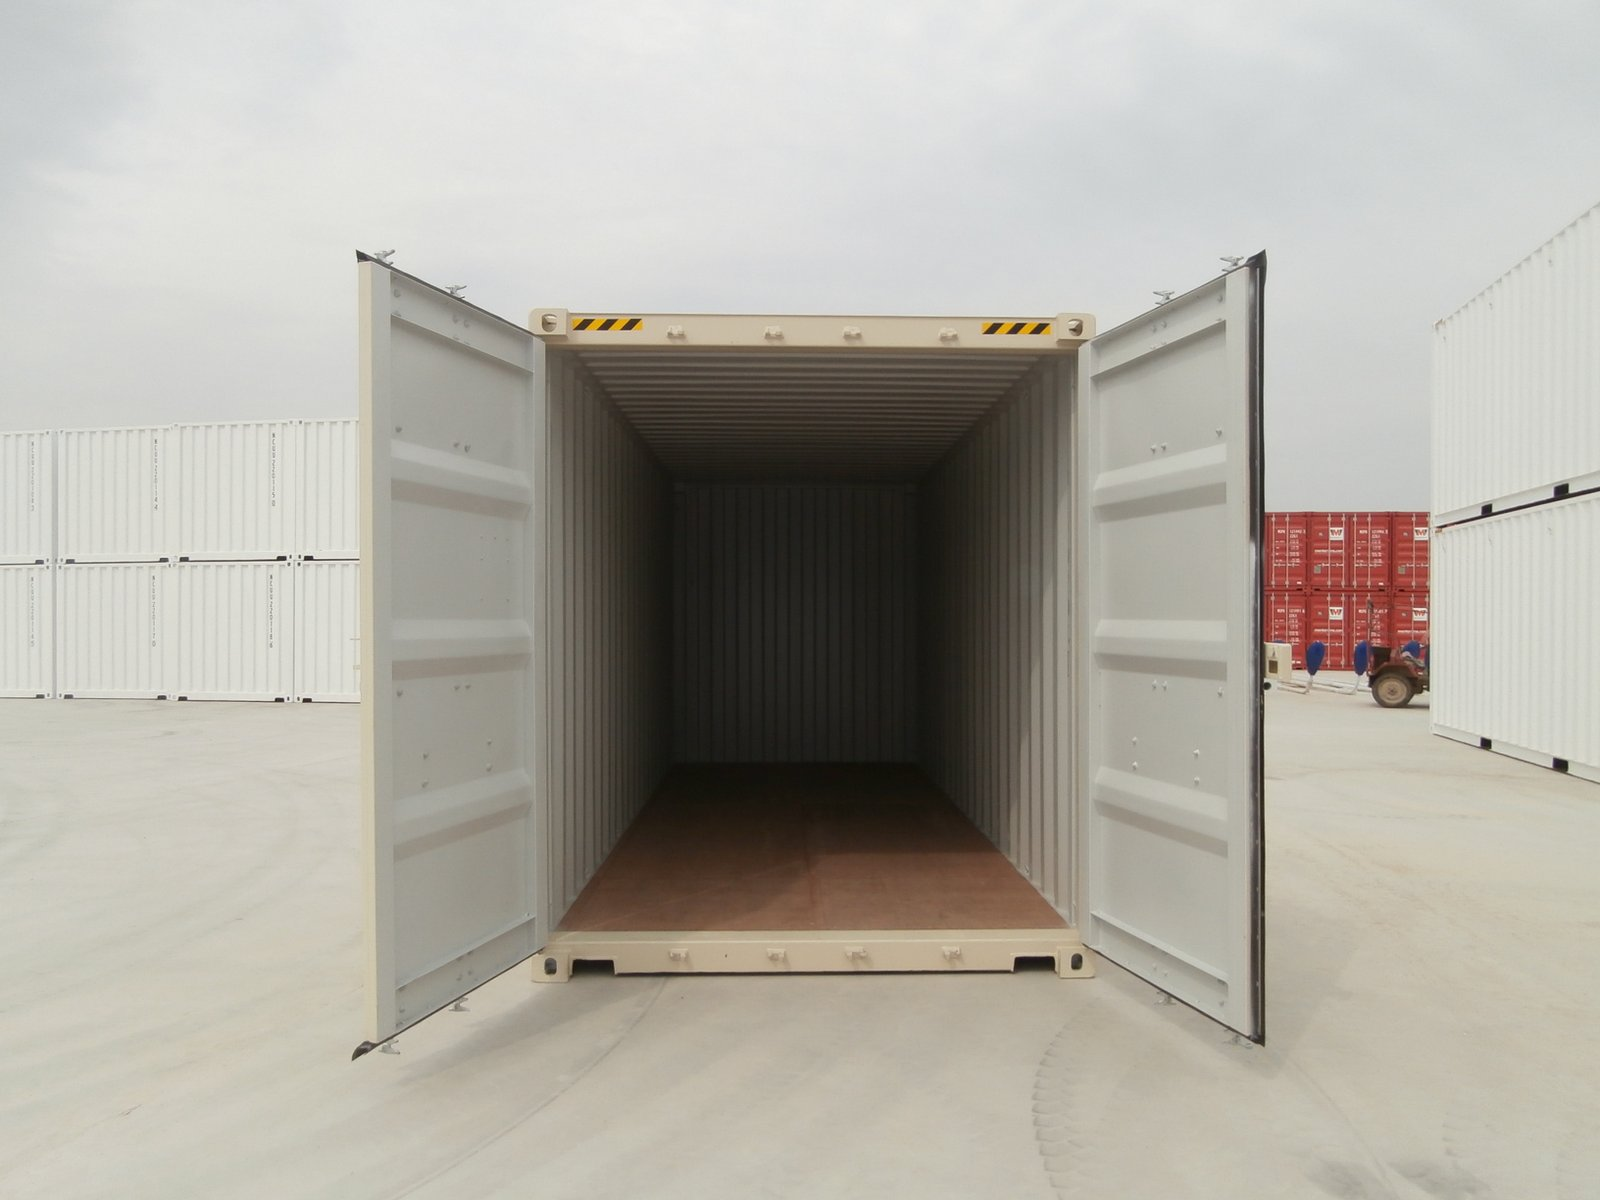 20ft high cube shipping container beige doors open